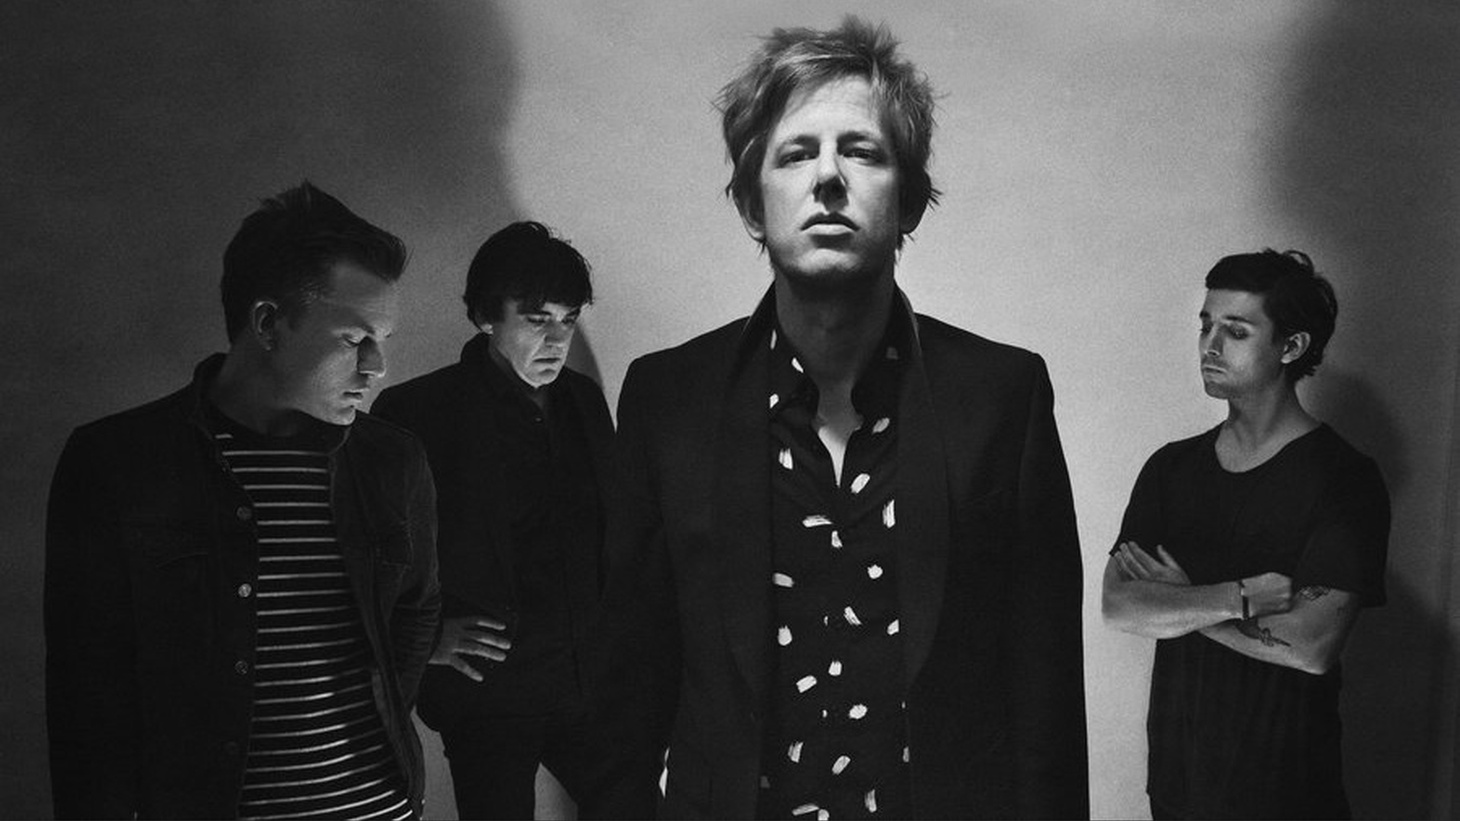 After three consecutive highly acclaimed albums, Spoon returns with an exciting new release, co-produced by Dave Fridmann (Flaming Lips).